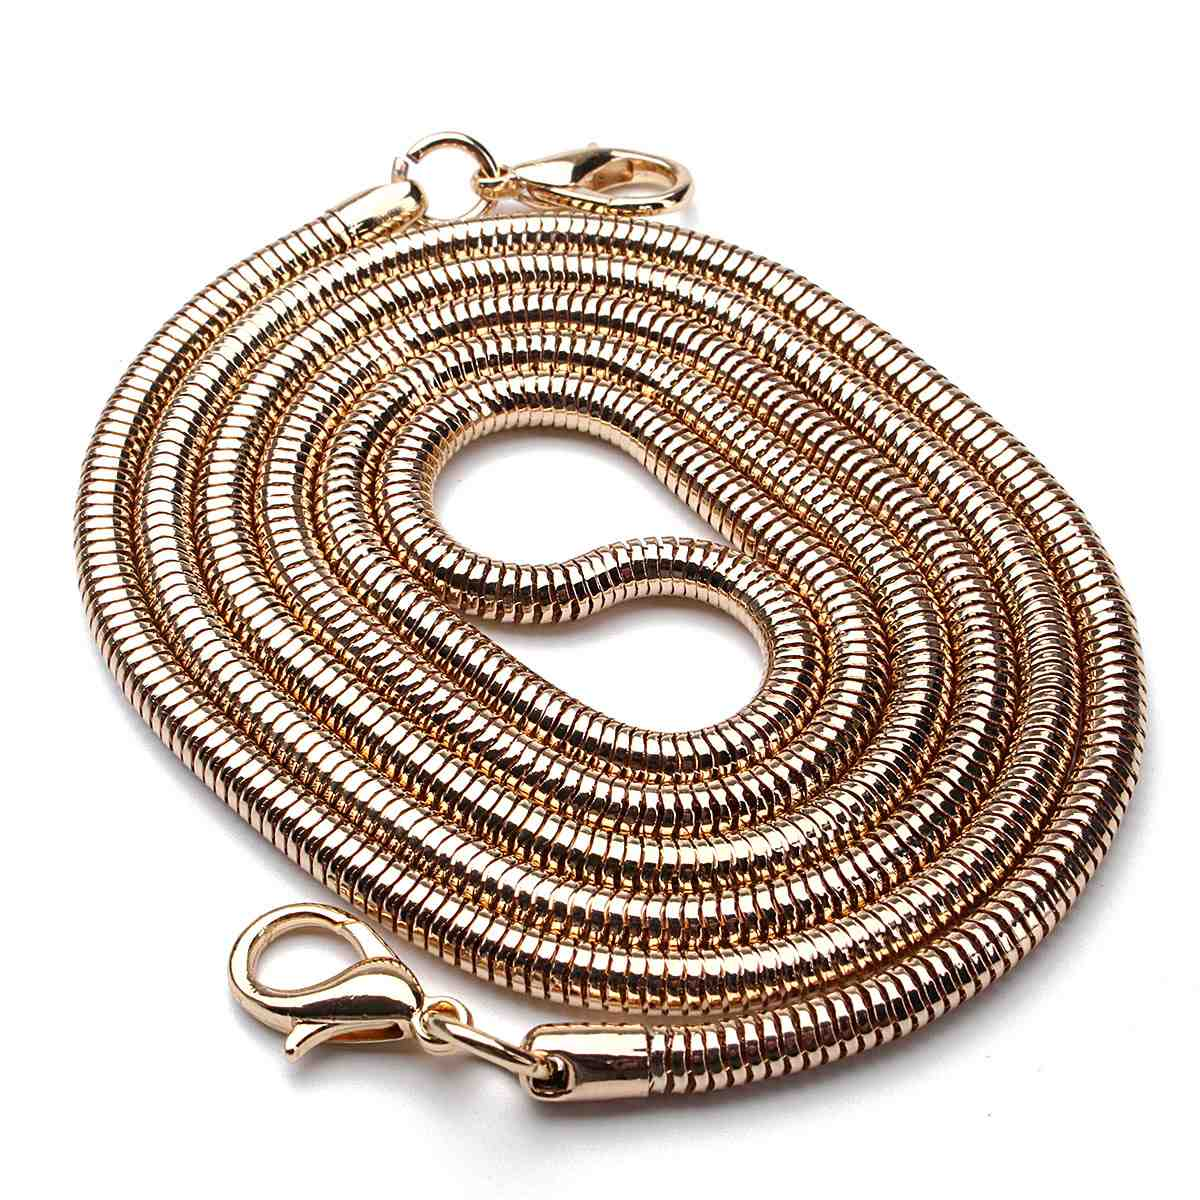 110CM Replacement Bag Straps DIY Chain Strap Handle Shoulder Belts Stainless Steel Copper Bag Metal Bands Bag Parts Accessories